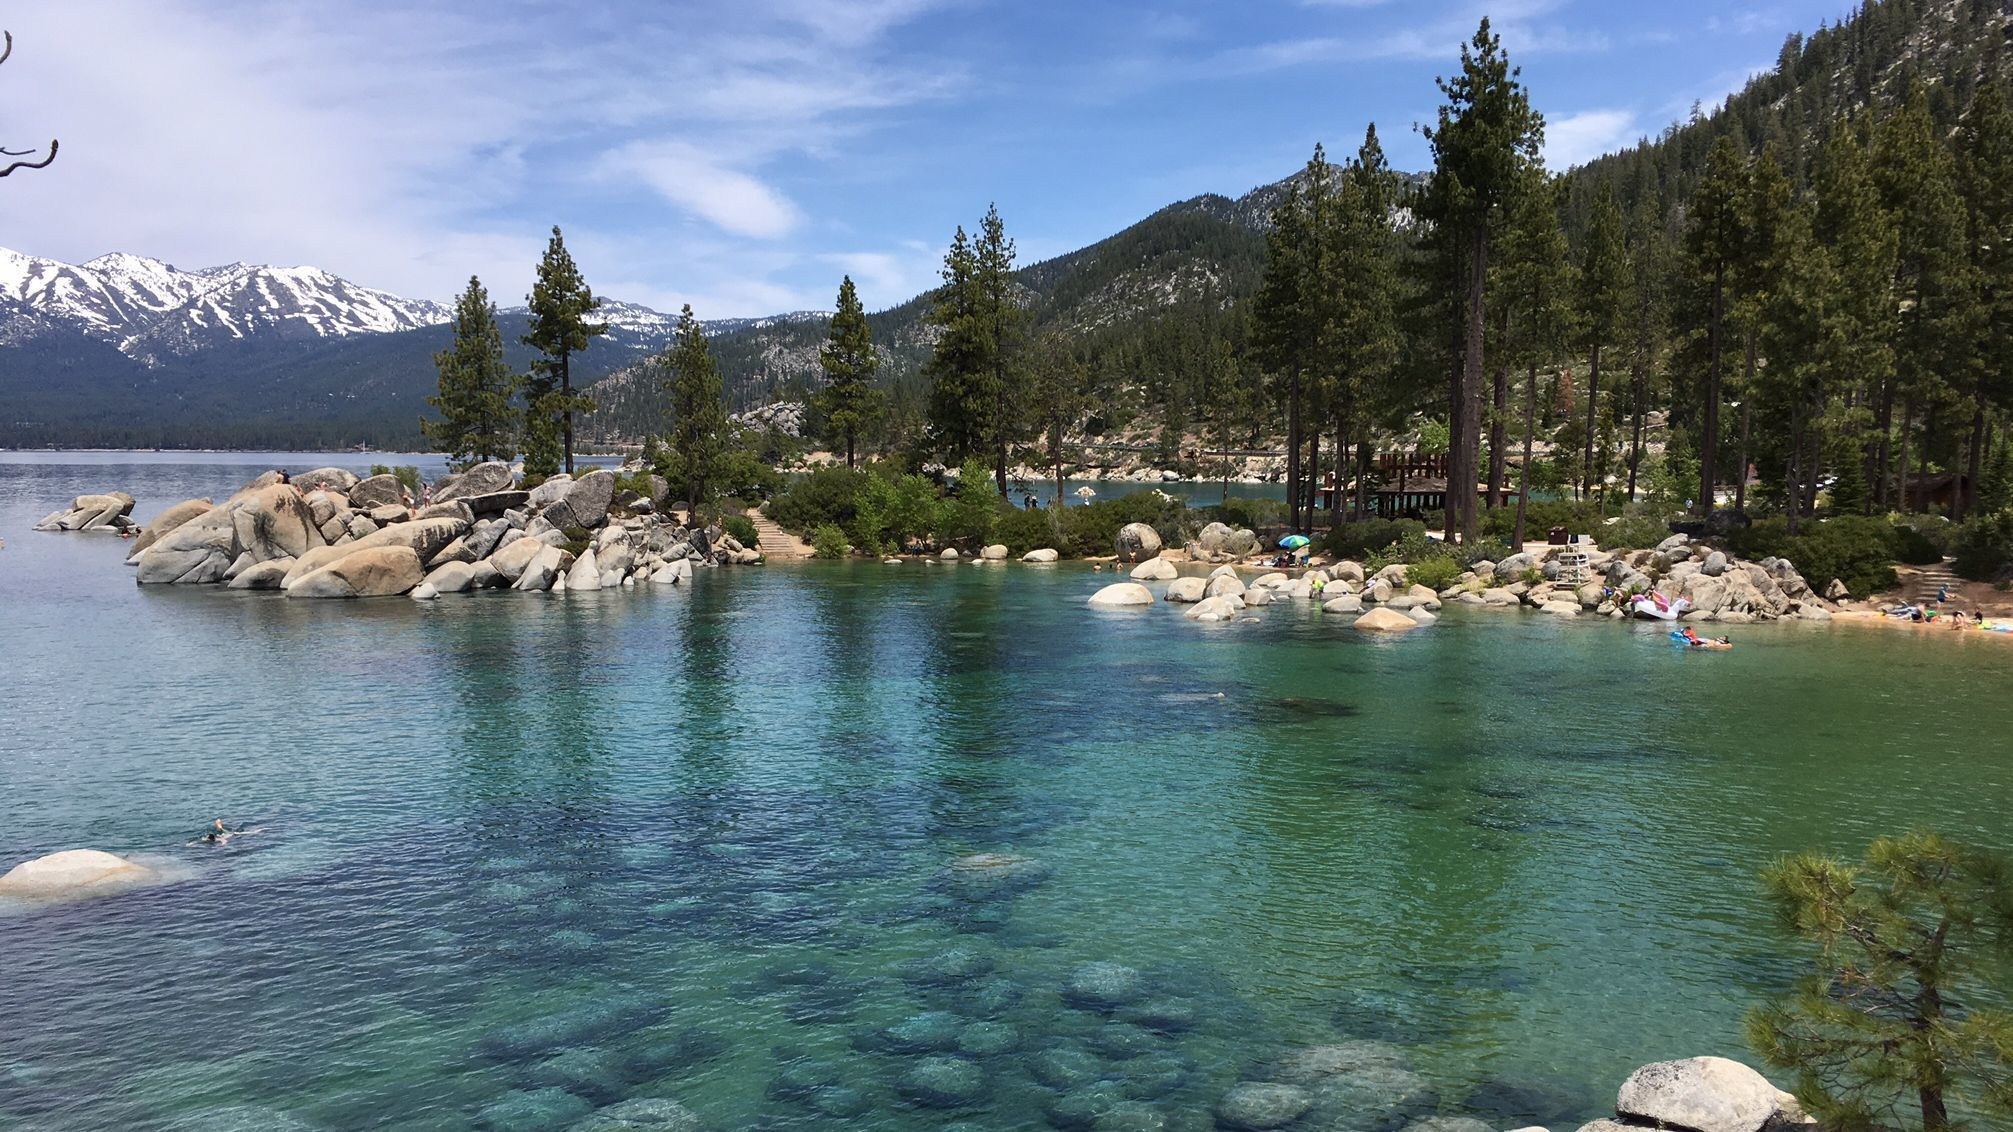 Summer in Lake Tahoe striking revelation for these SoCal